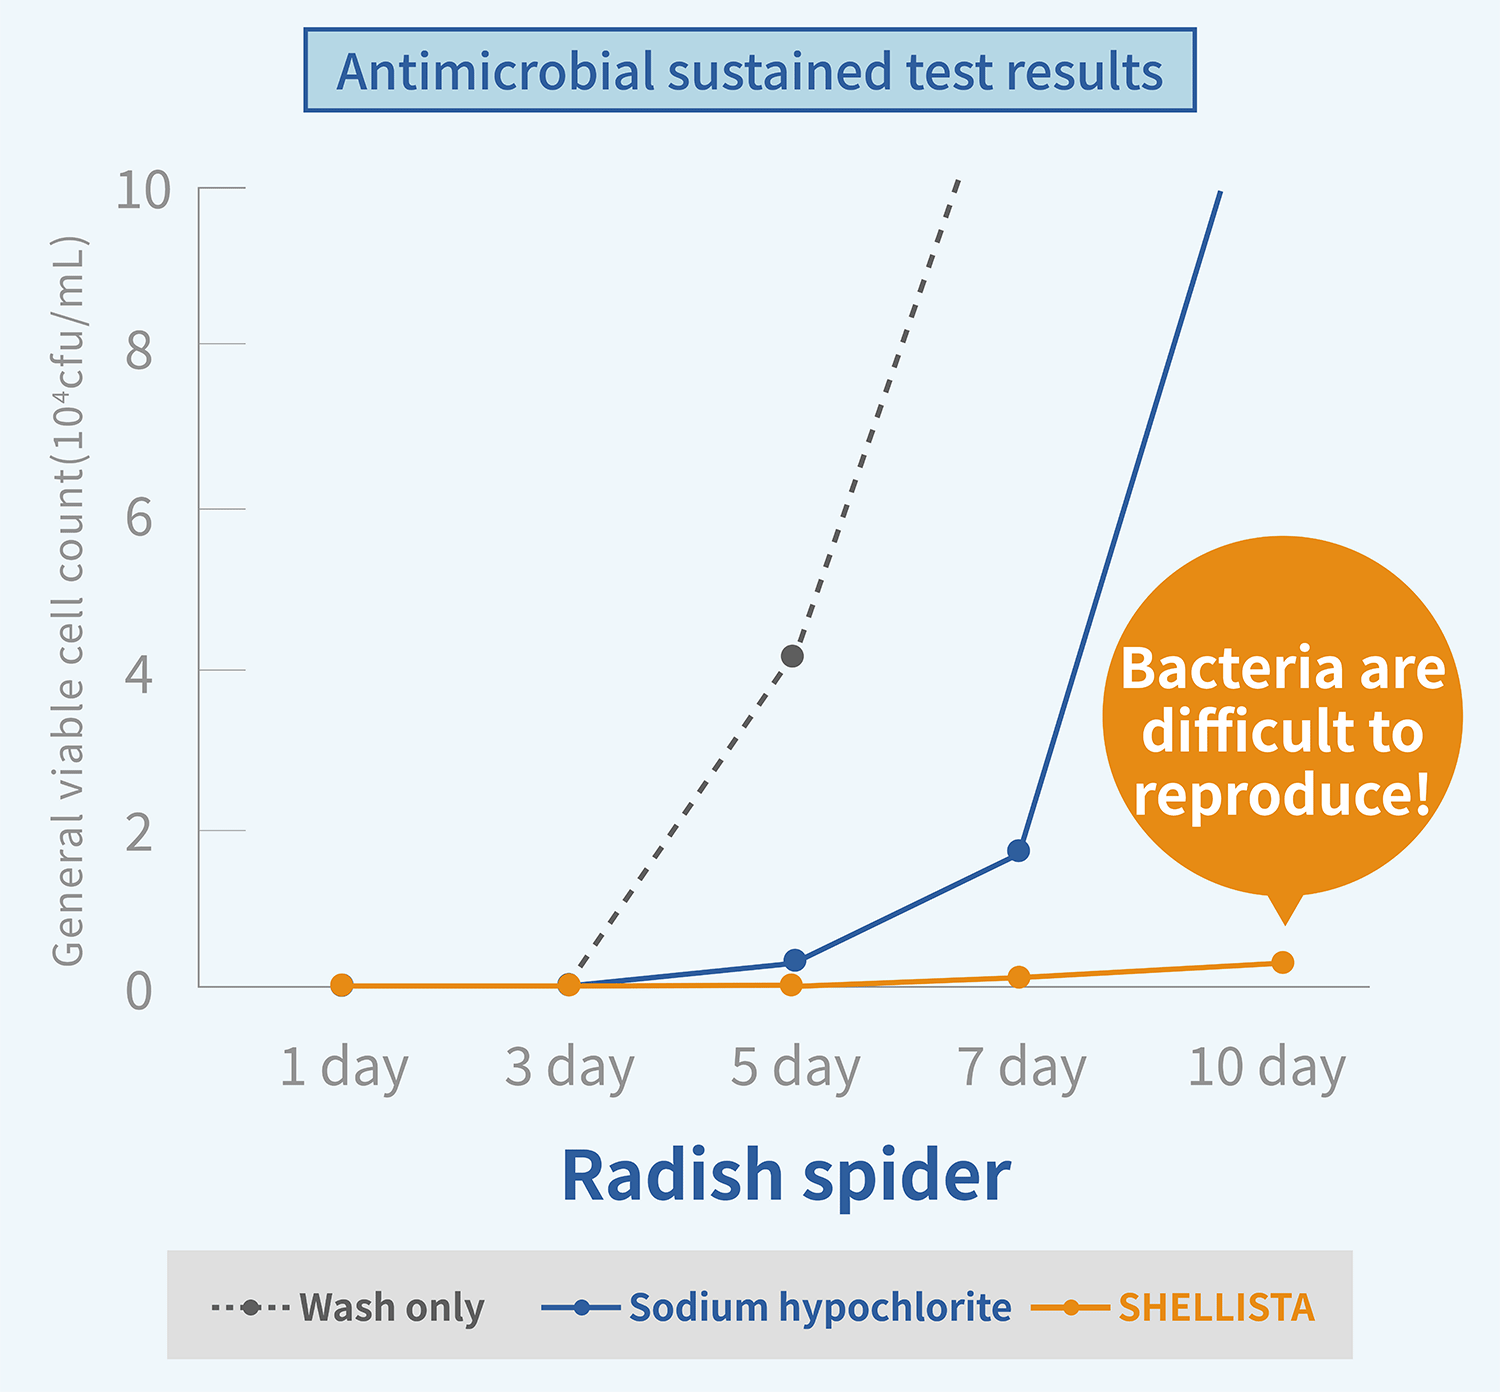 An example of results of antibacterial sustained test